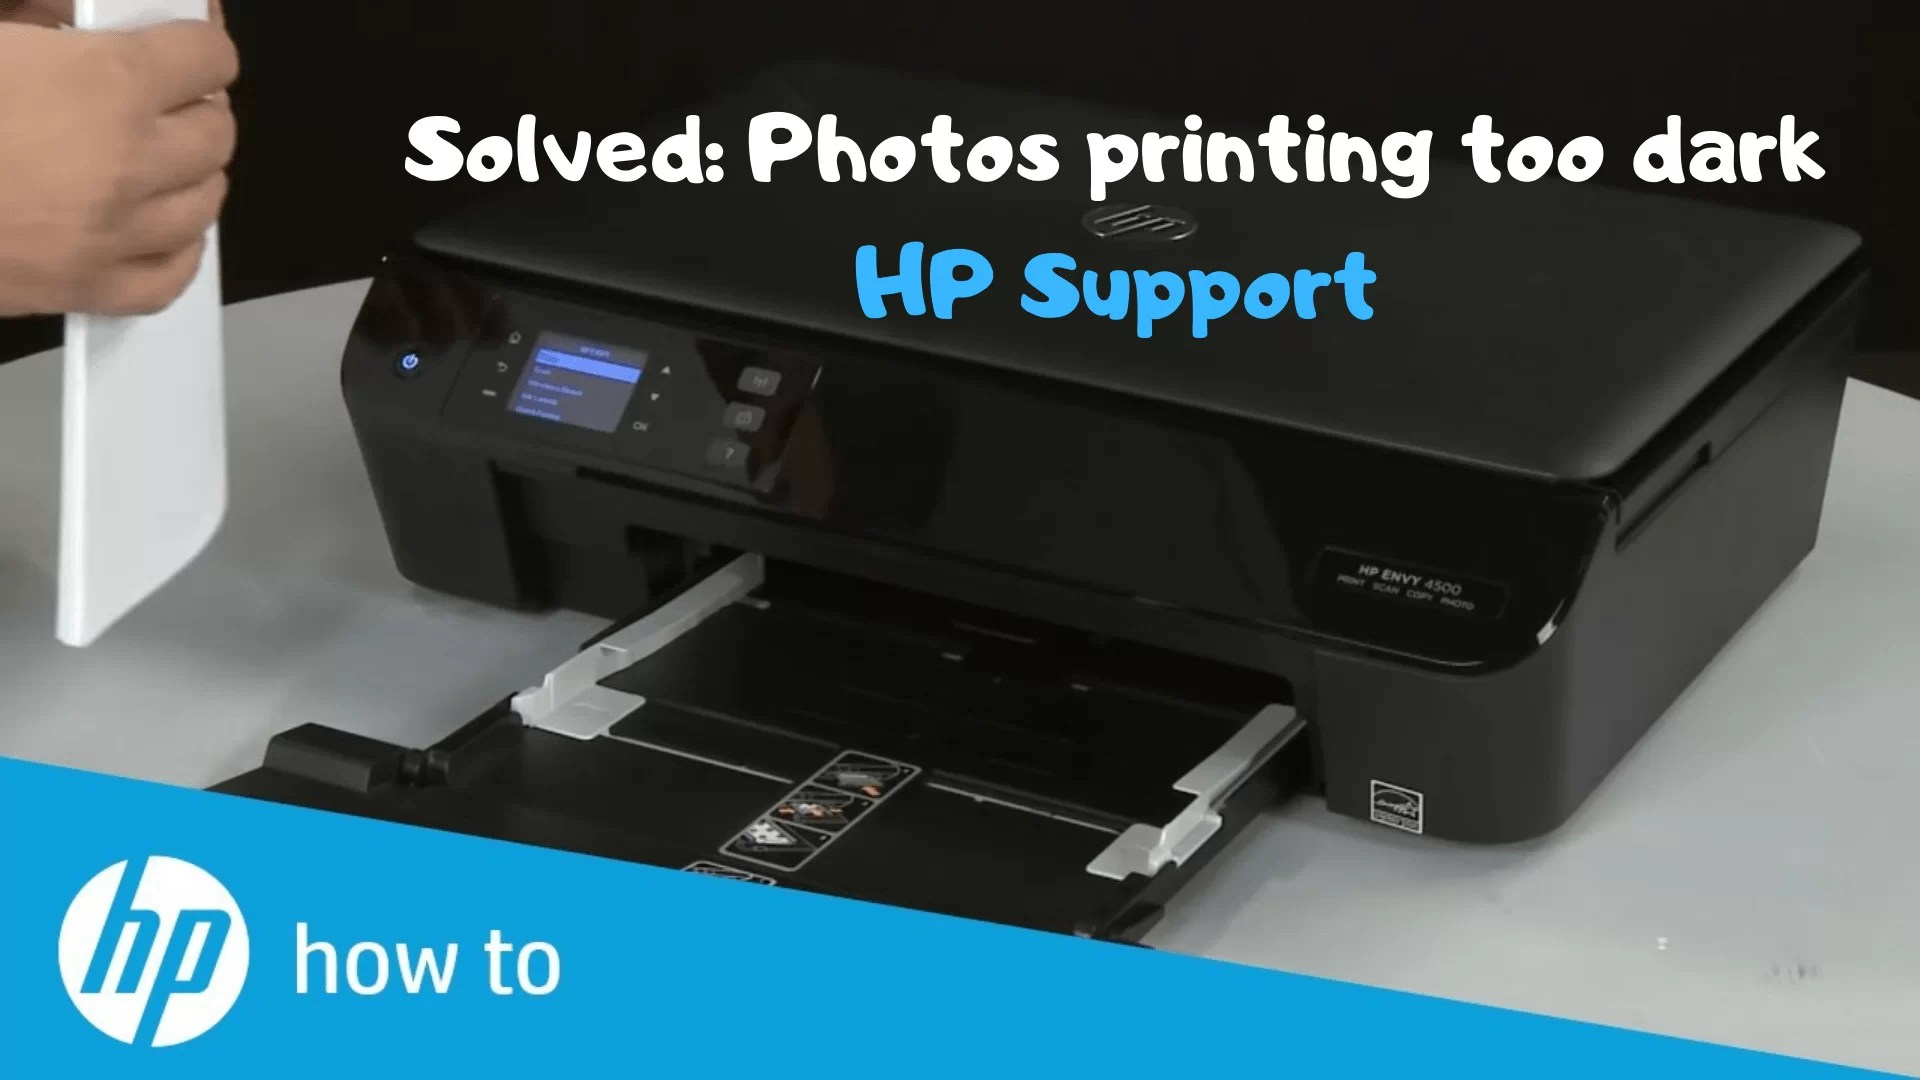 hp printer printing too dark